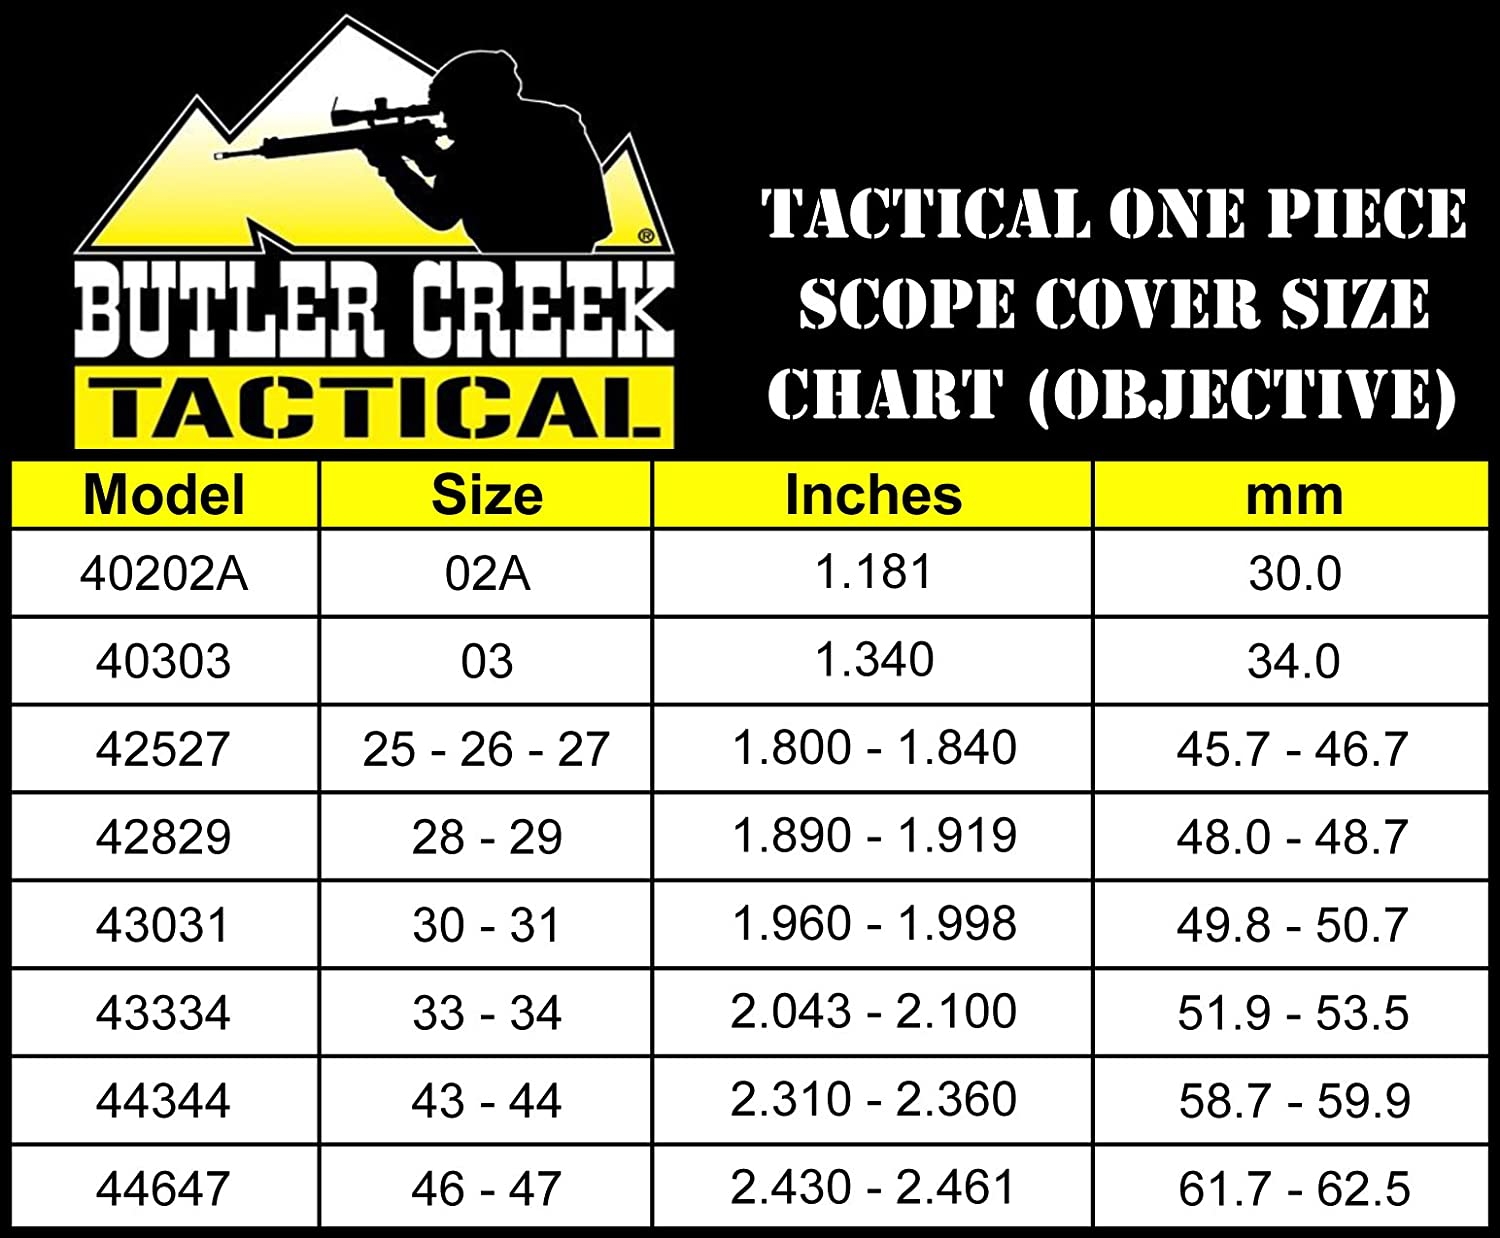 Amazon com butler creek objective tactical scope cover 1 piece